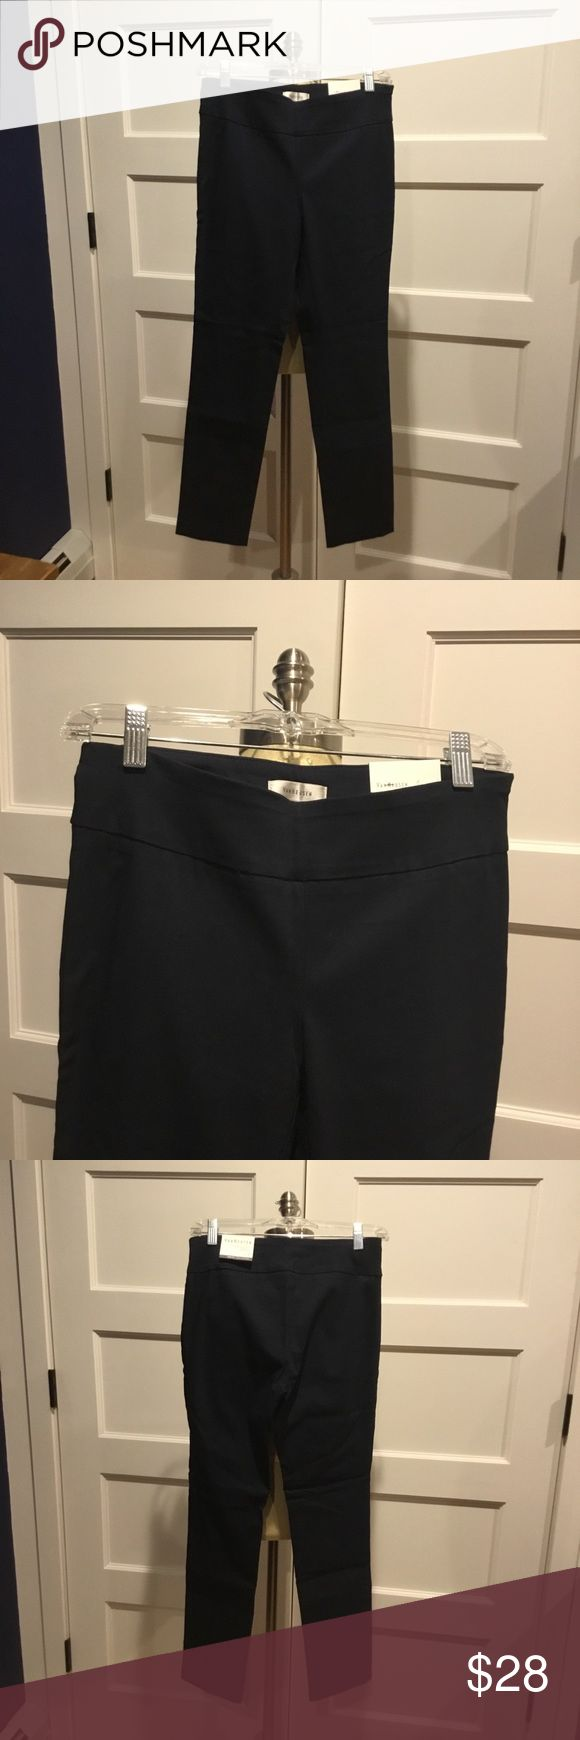 Van Heusen Dress Pants These navy blue dress pants are perfect for a day at the office, or any event where you need to be dressed business casual. They are stretchy at the top with no button or zipper. You just slip them on! They're brand new, size 2 short. Van Heusen Pants